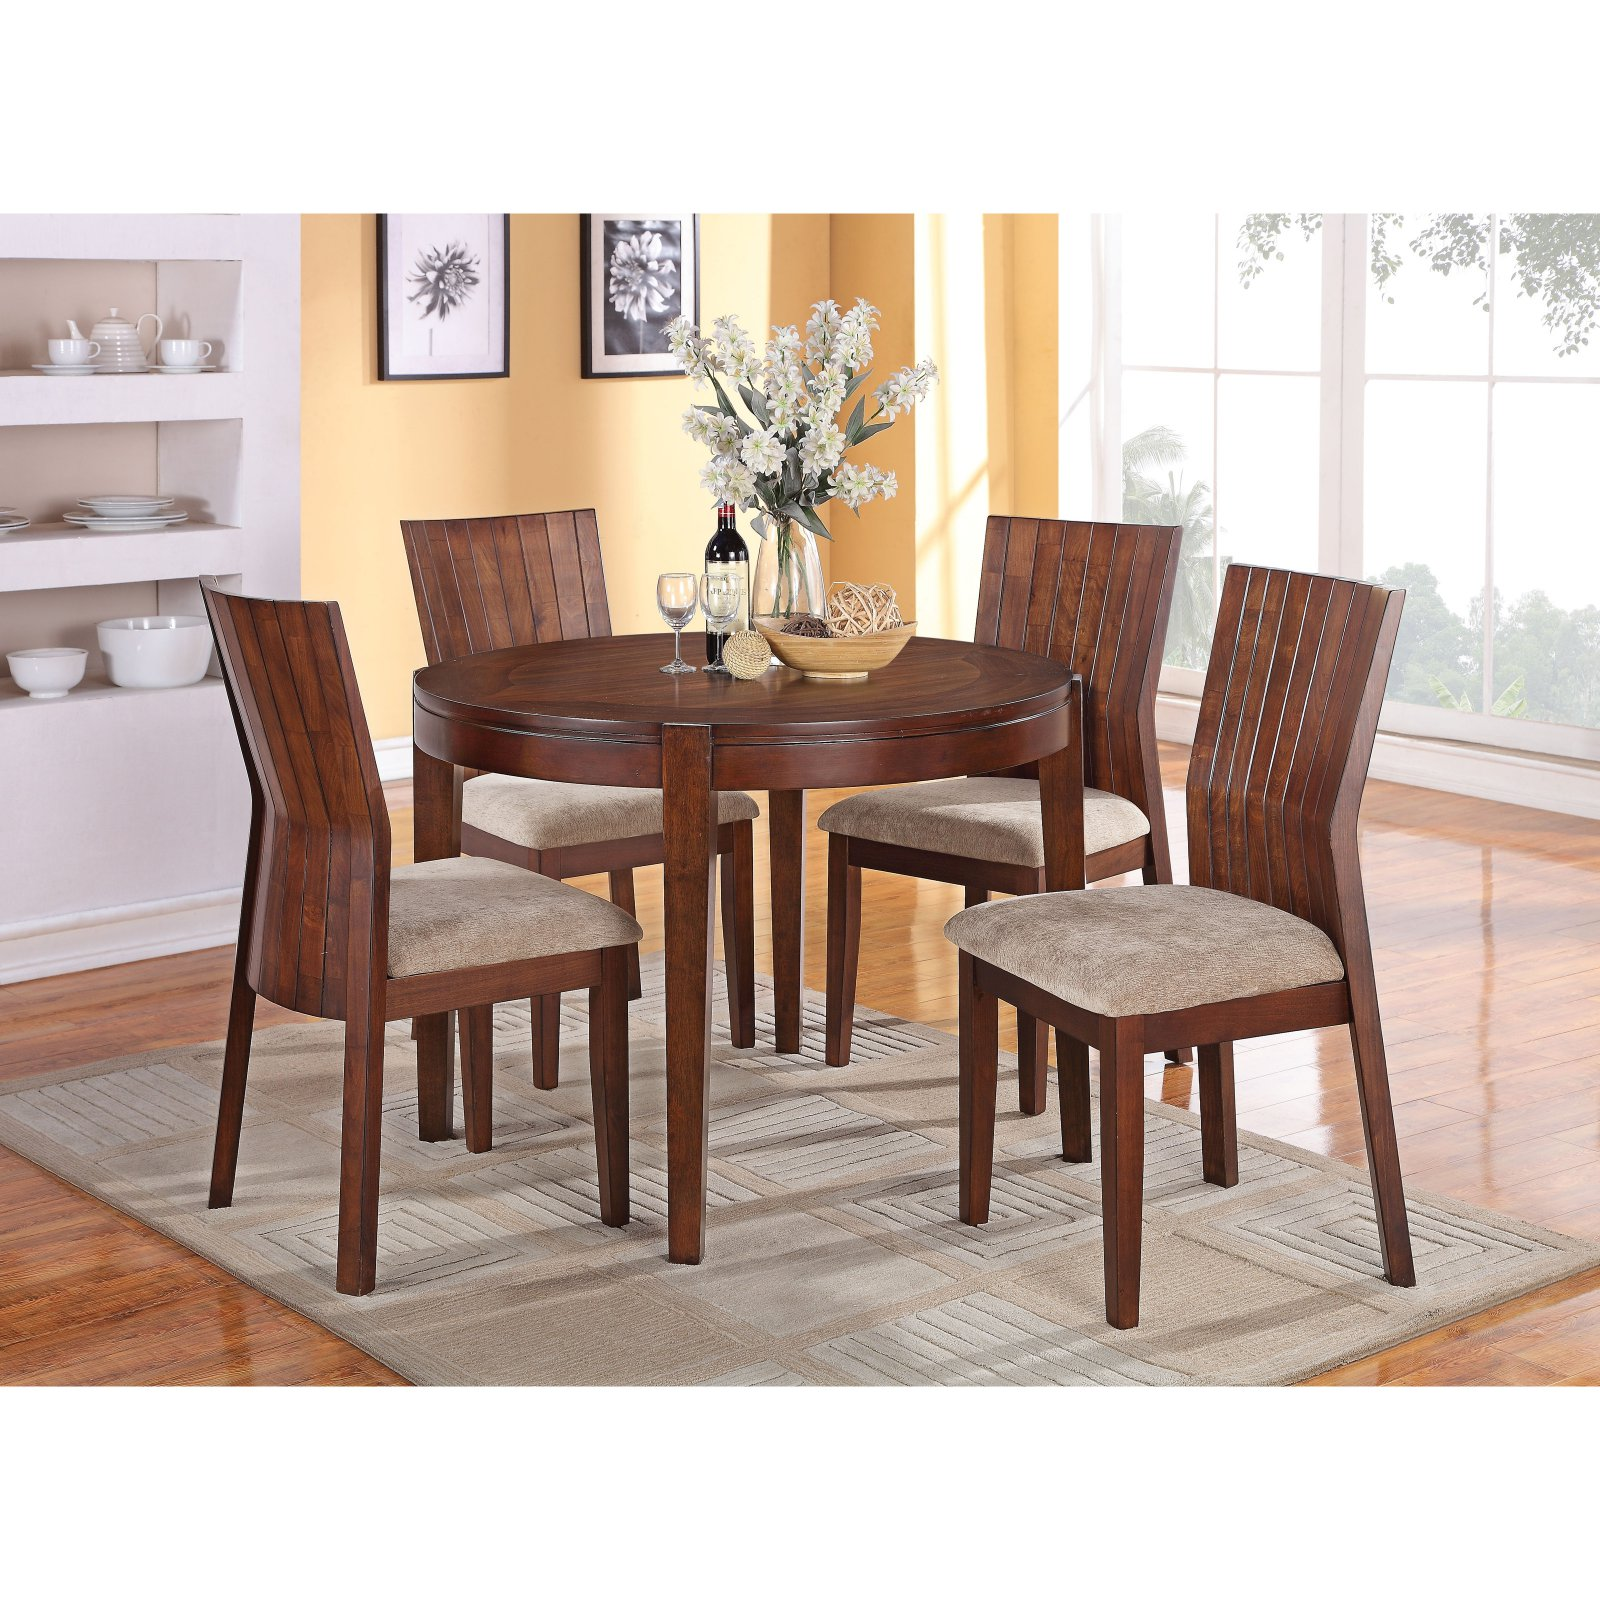 ACME Mauro Dining Table, Dark Brown by